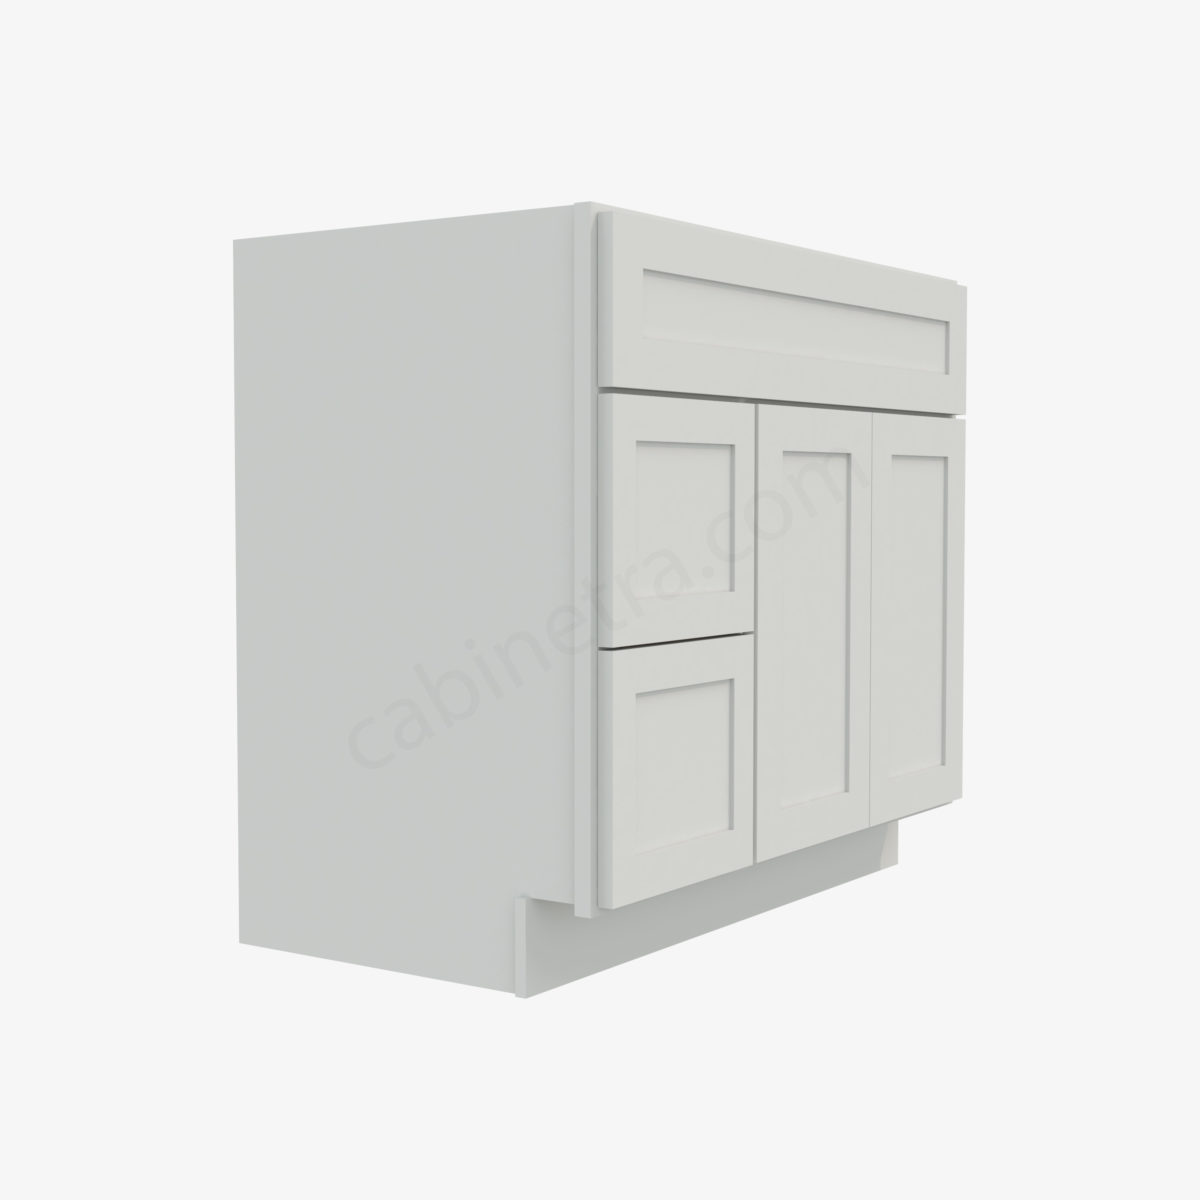 AW S3621BDL 34 4 Forevermark Ice White Shaker Cabinetra scaled